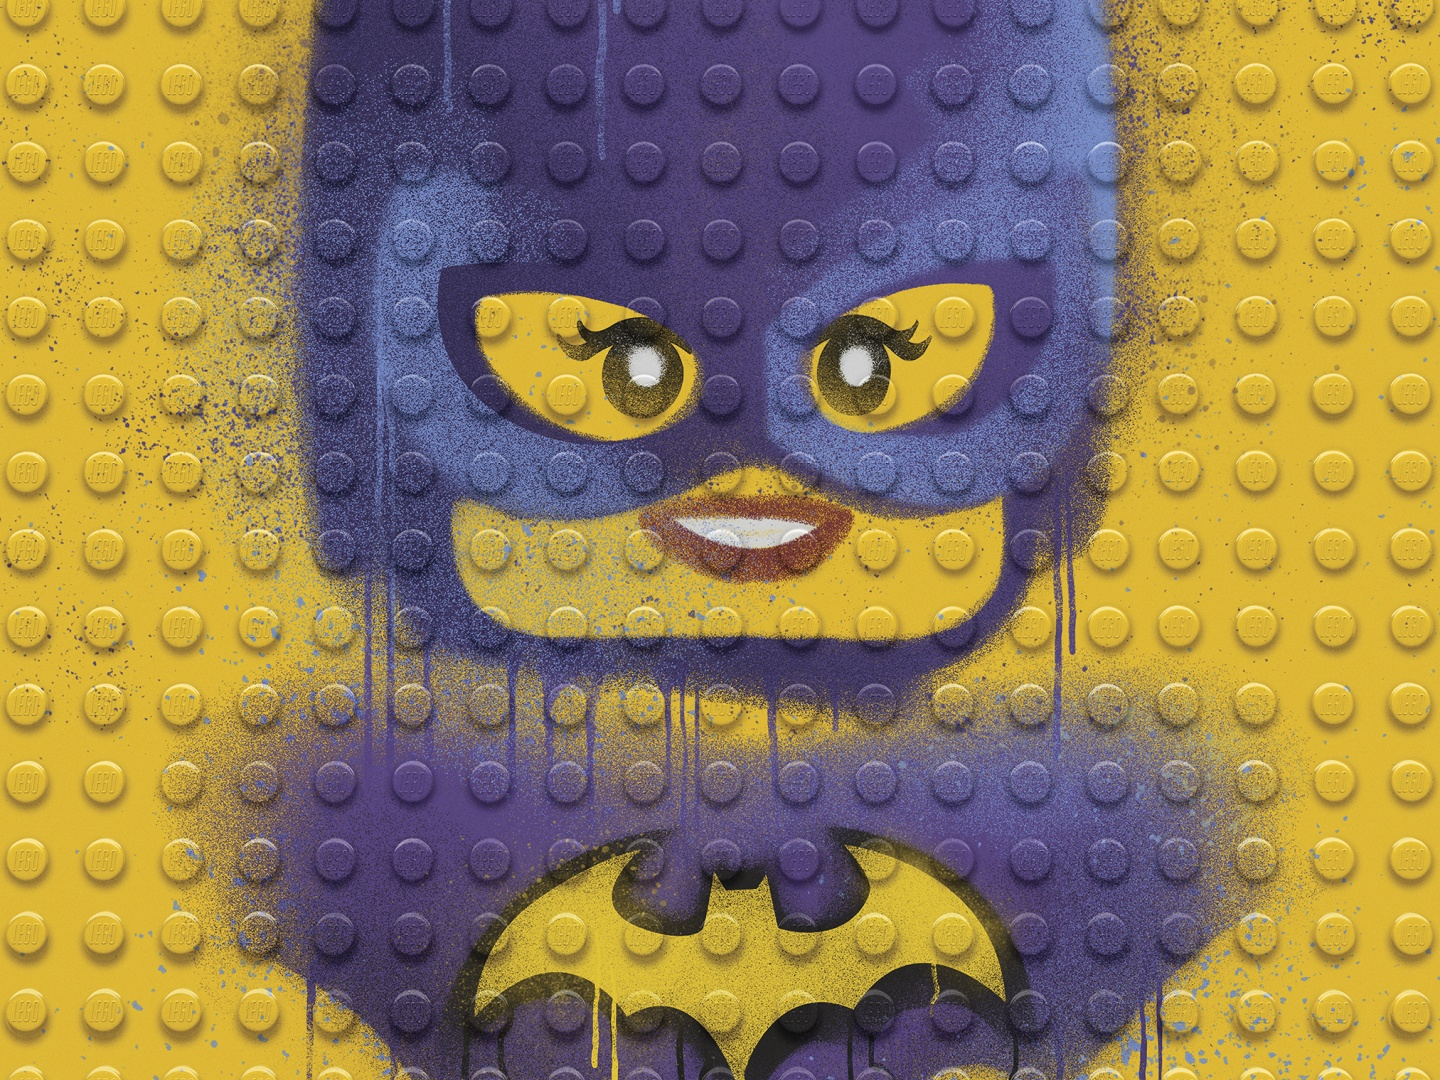 Image for The LEGO Batman Movie - Graffiti Wild Postings | Batgirl